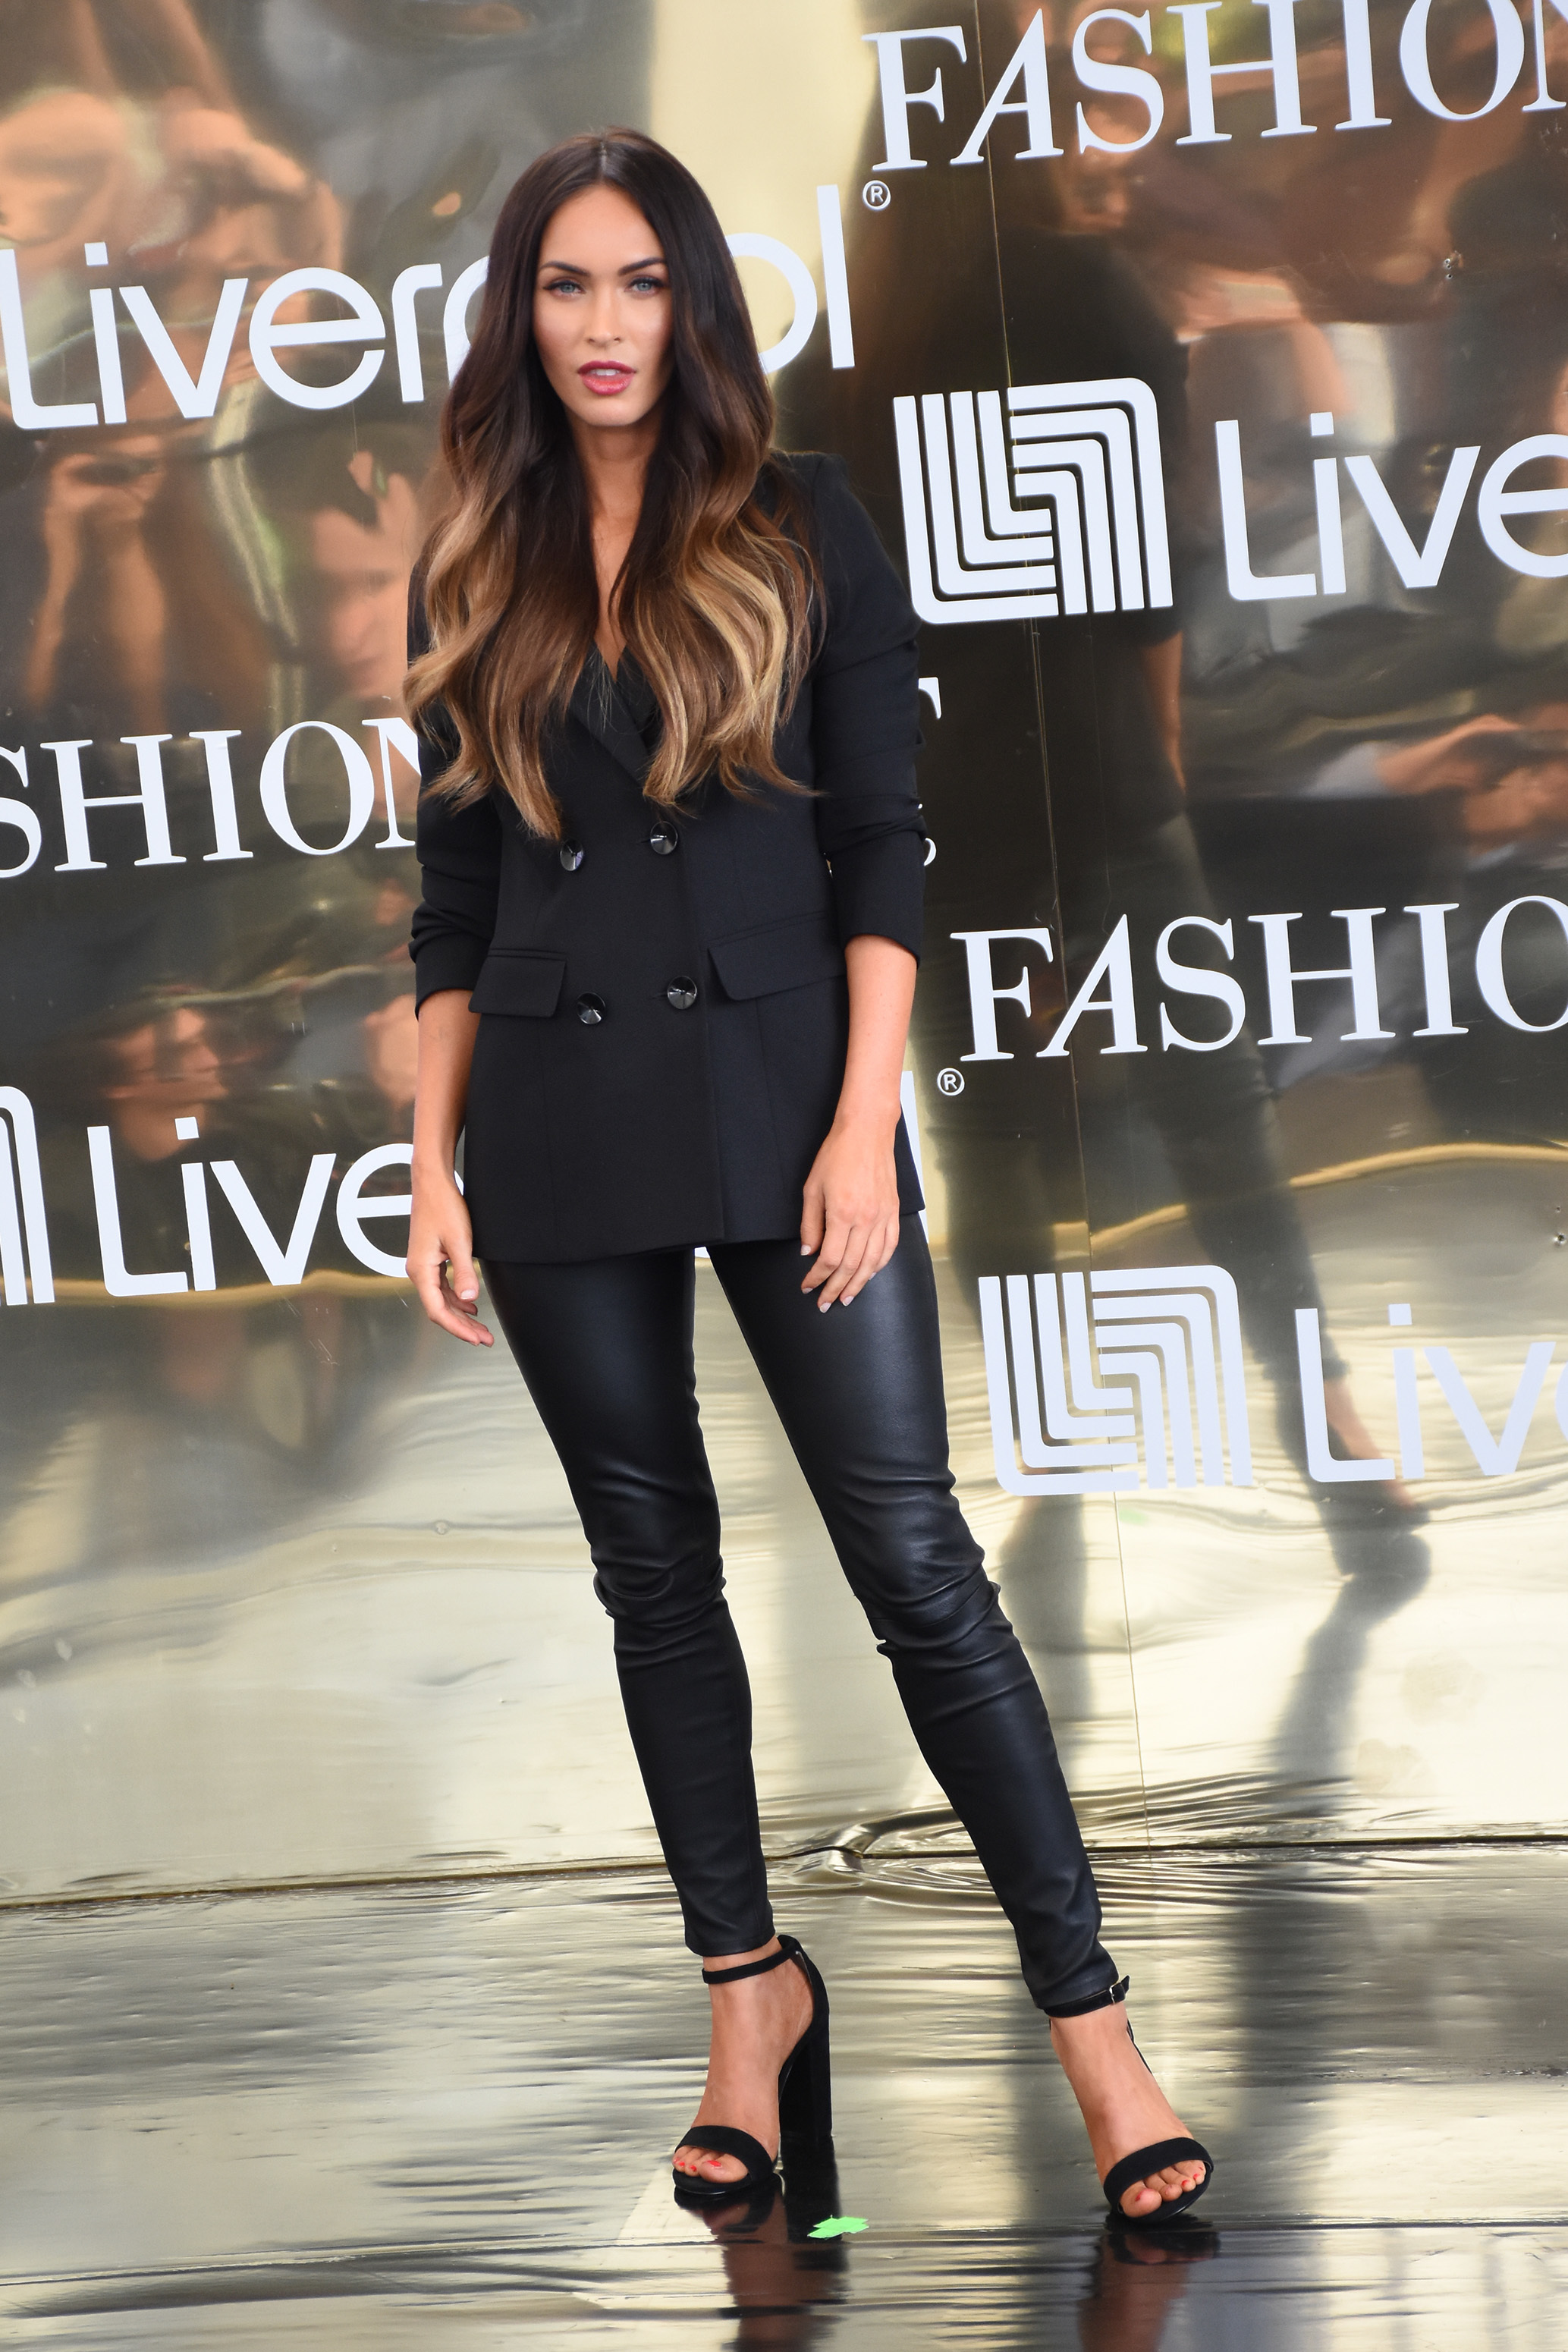 Megan Fox attends  at press conference to promote Fashion Fest Autumn/ Winter 2017  at Liverpool Insurgentes in Mexico City, Mexico, on Sept. 06, 2017.